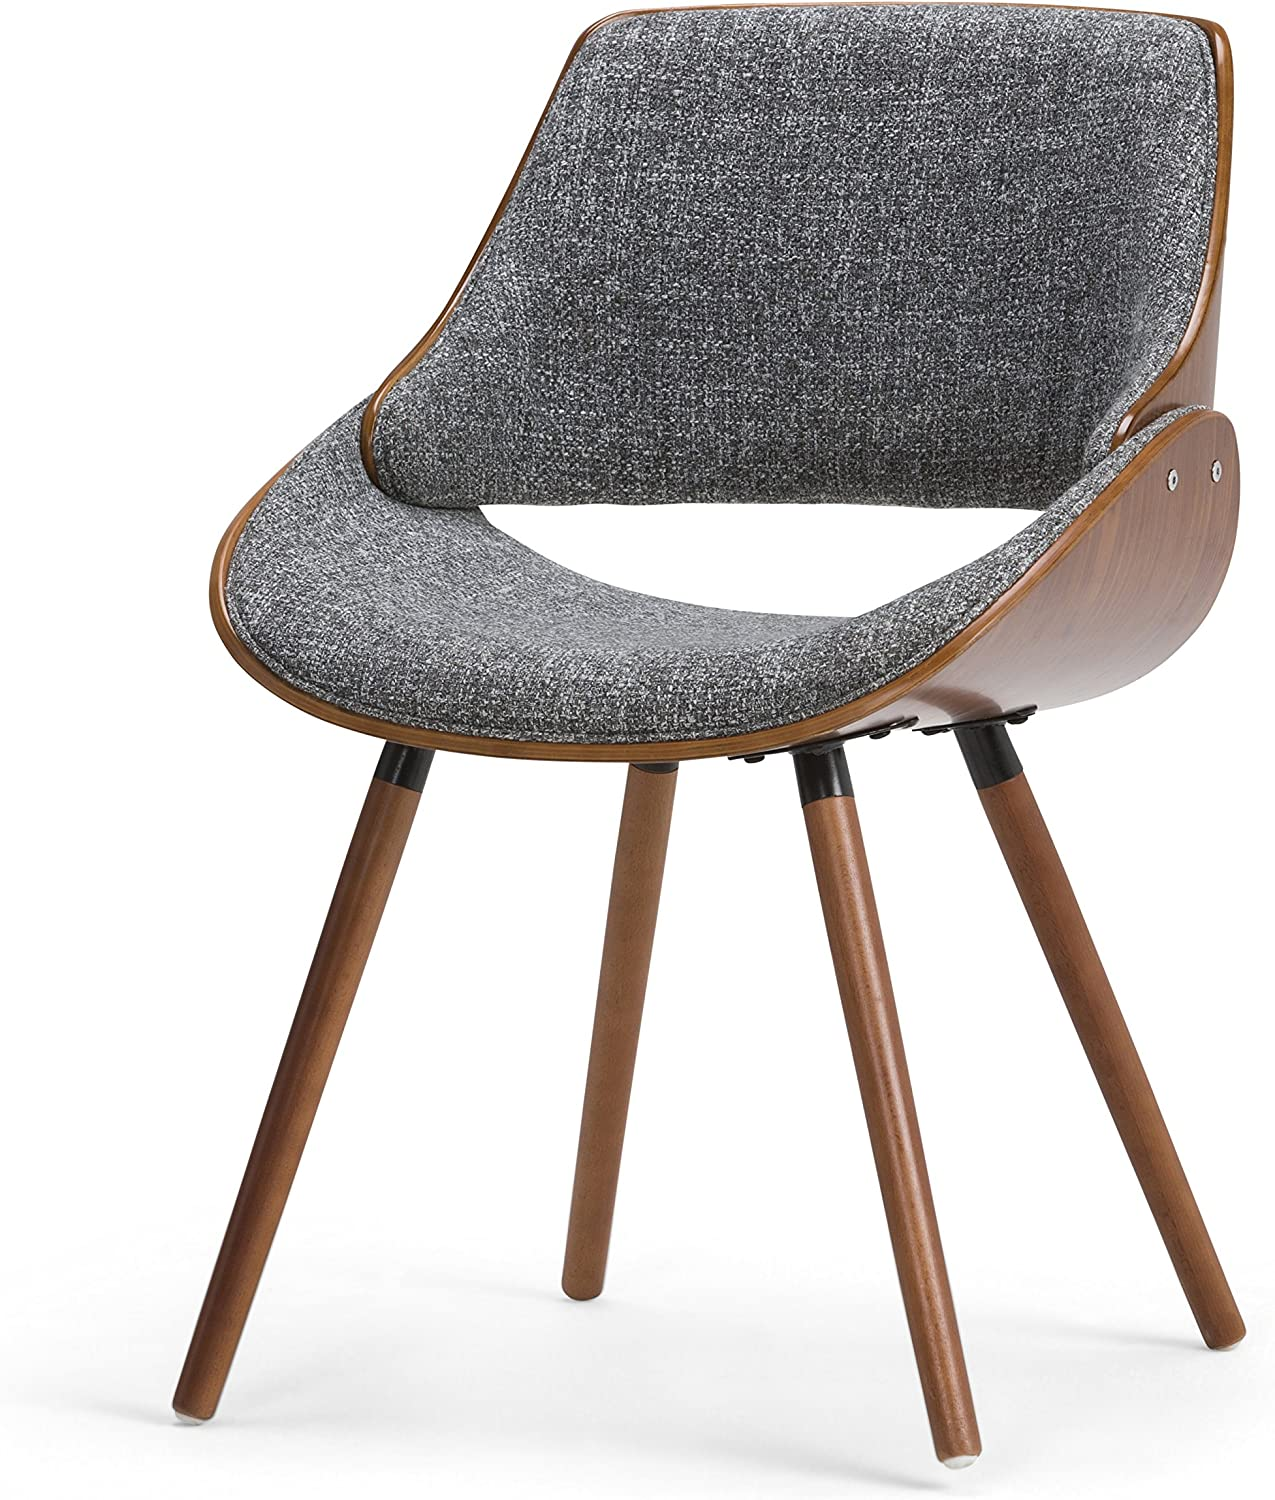 Simpli Home AXCMALW-G Malden Mid Century Modern Bentwood Dining Chair with Wood Back in Grey Woven Fabric